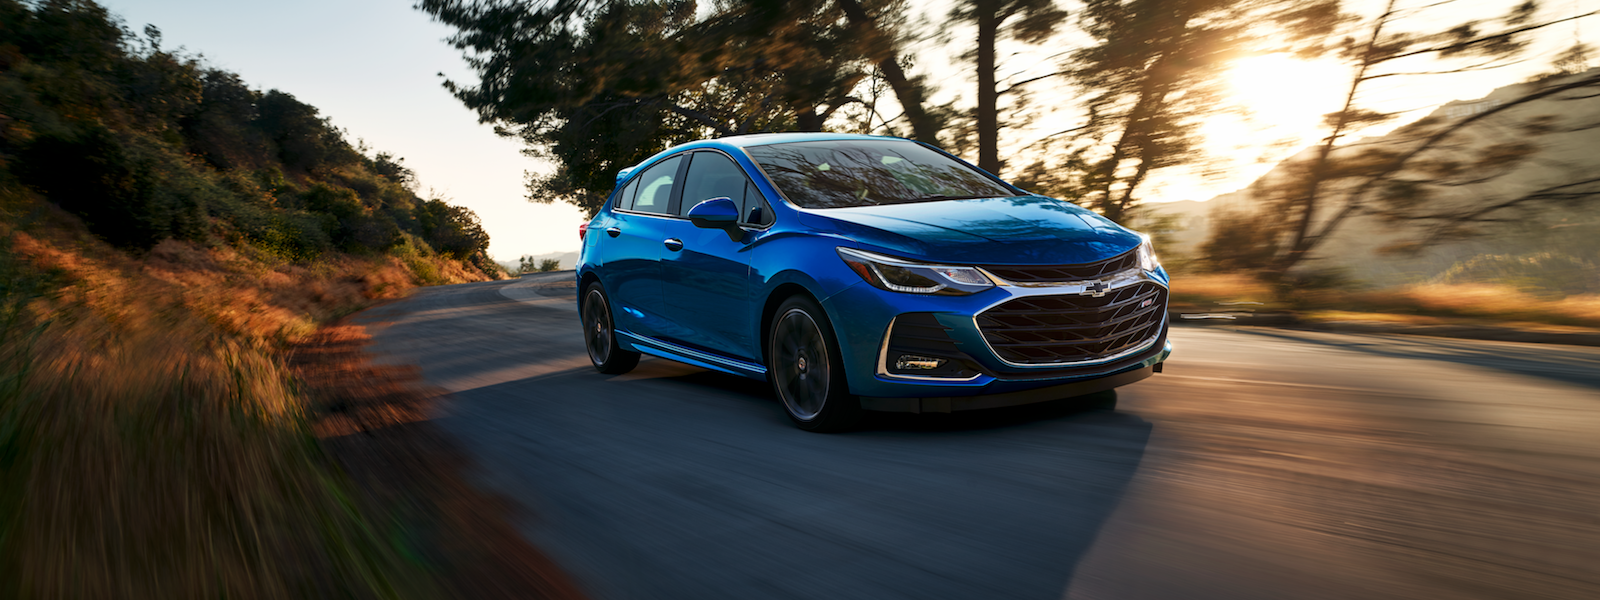 51 All New 2019 Chevy Cruze Spesification